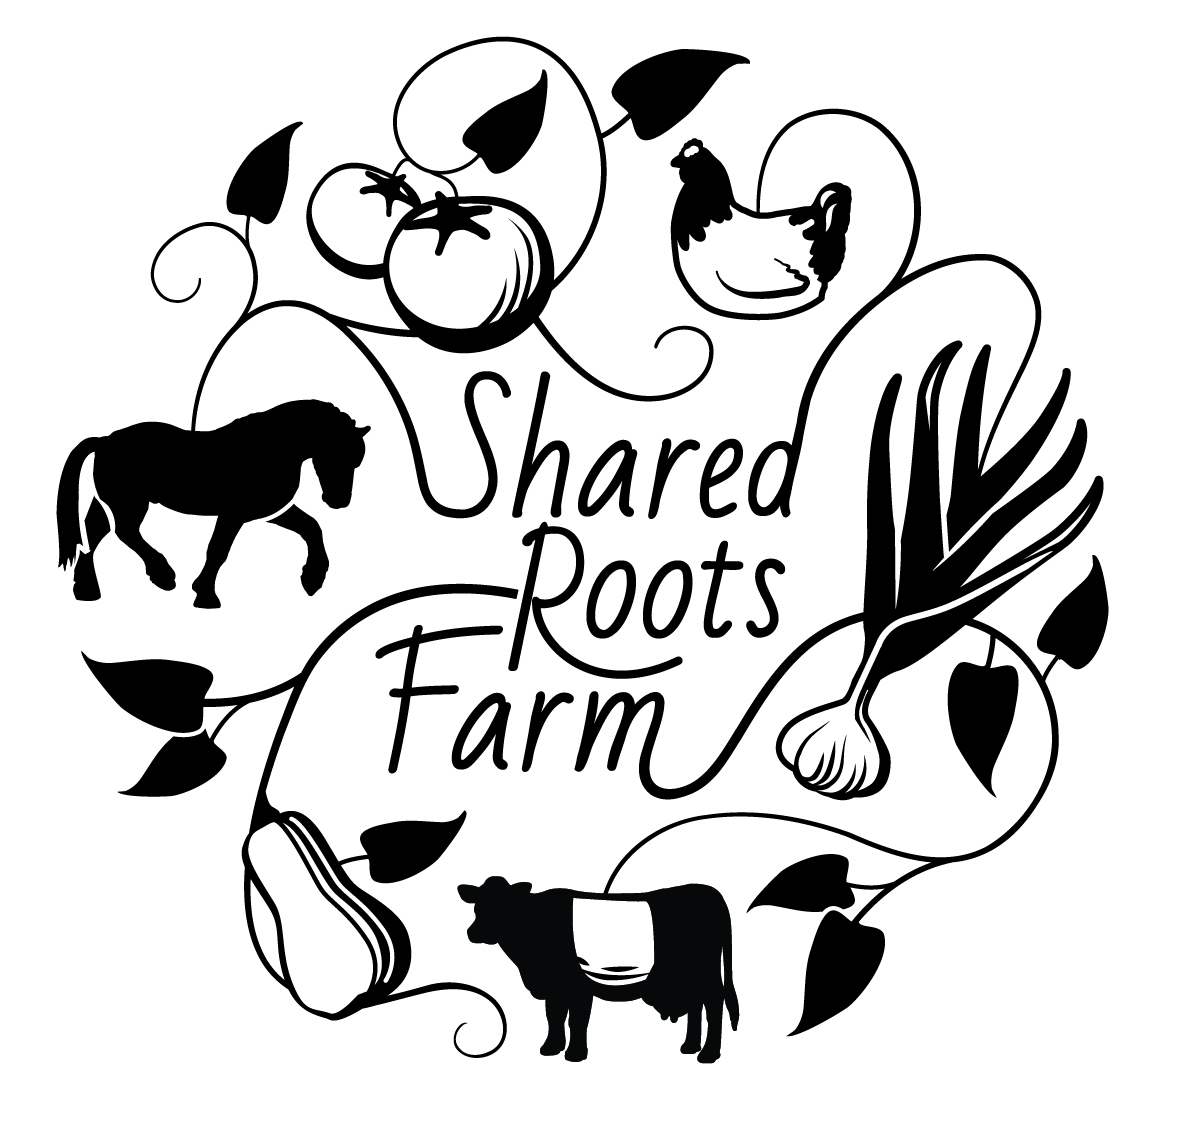 download-4-1 Shared Roots Farm & CSA